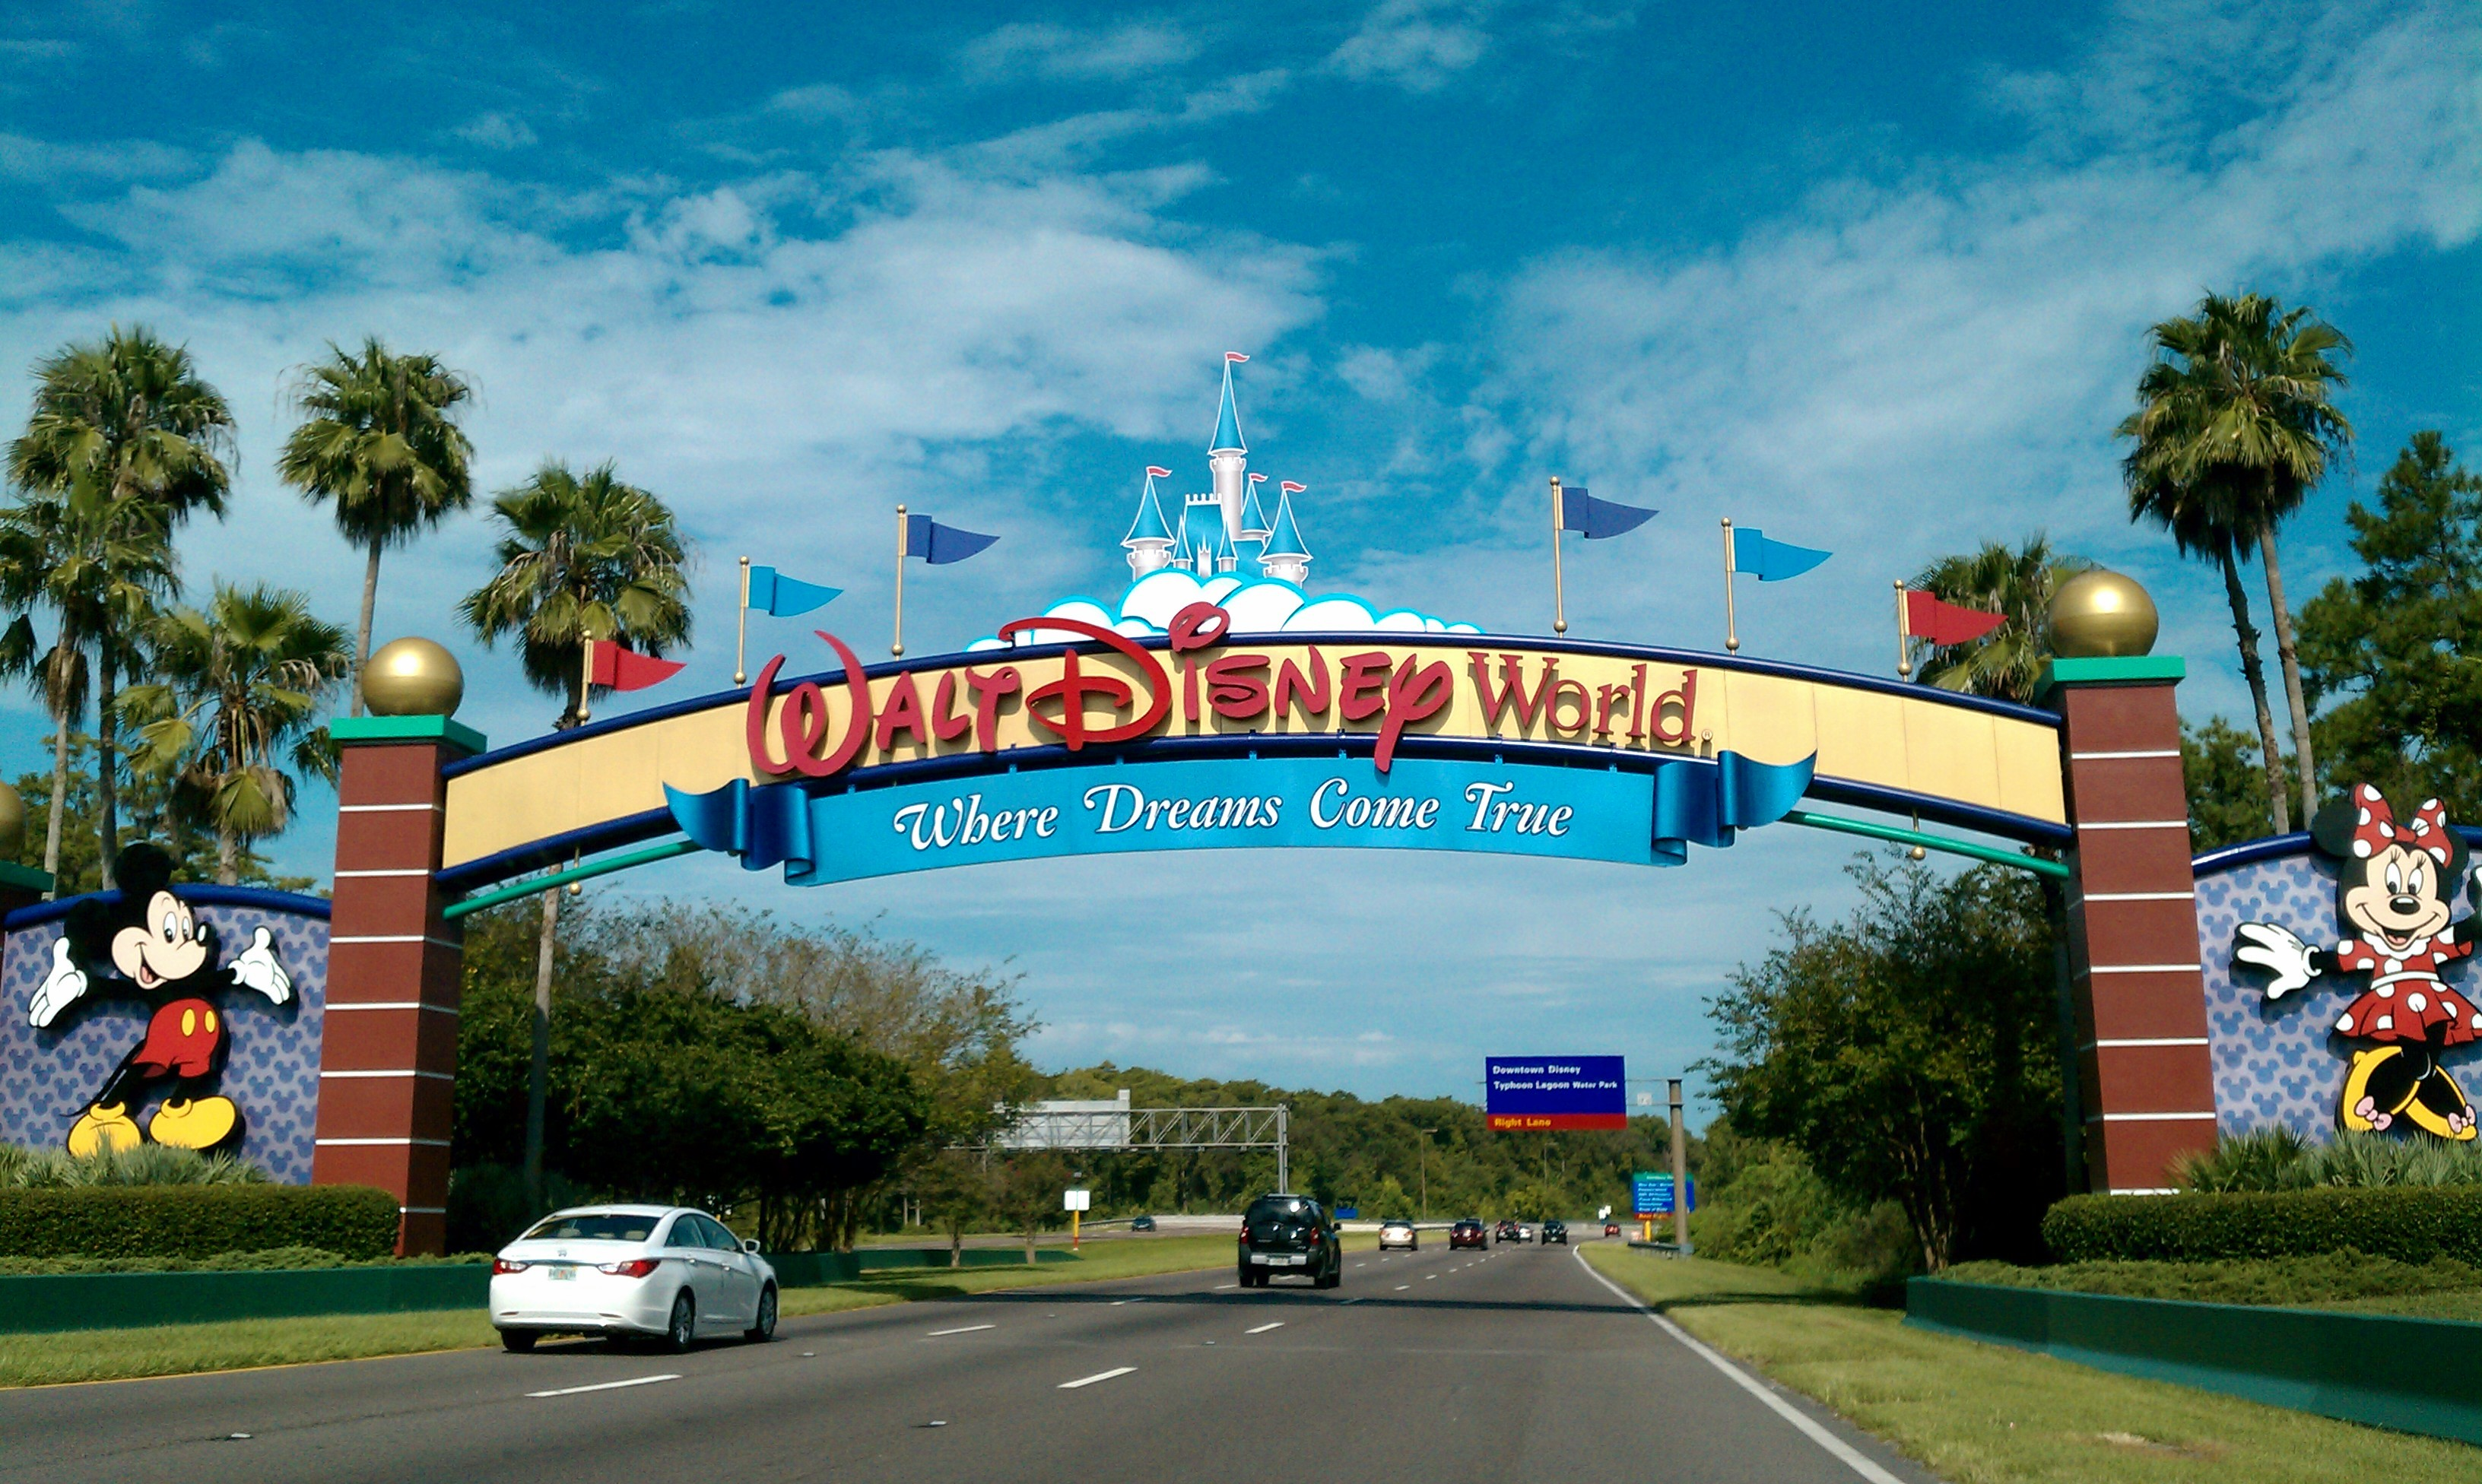 Worker killed in industrial accident at Disney World